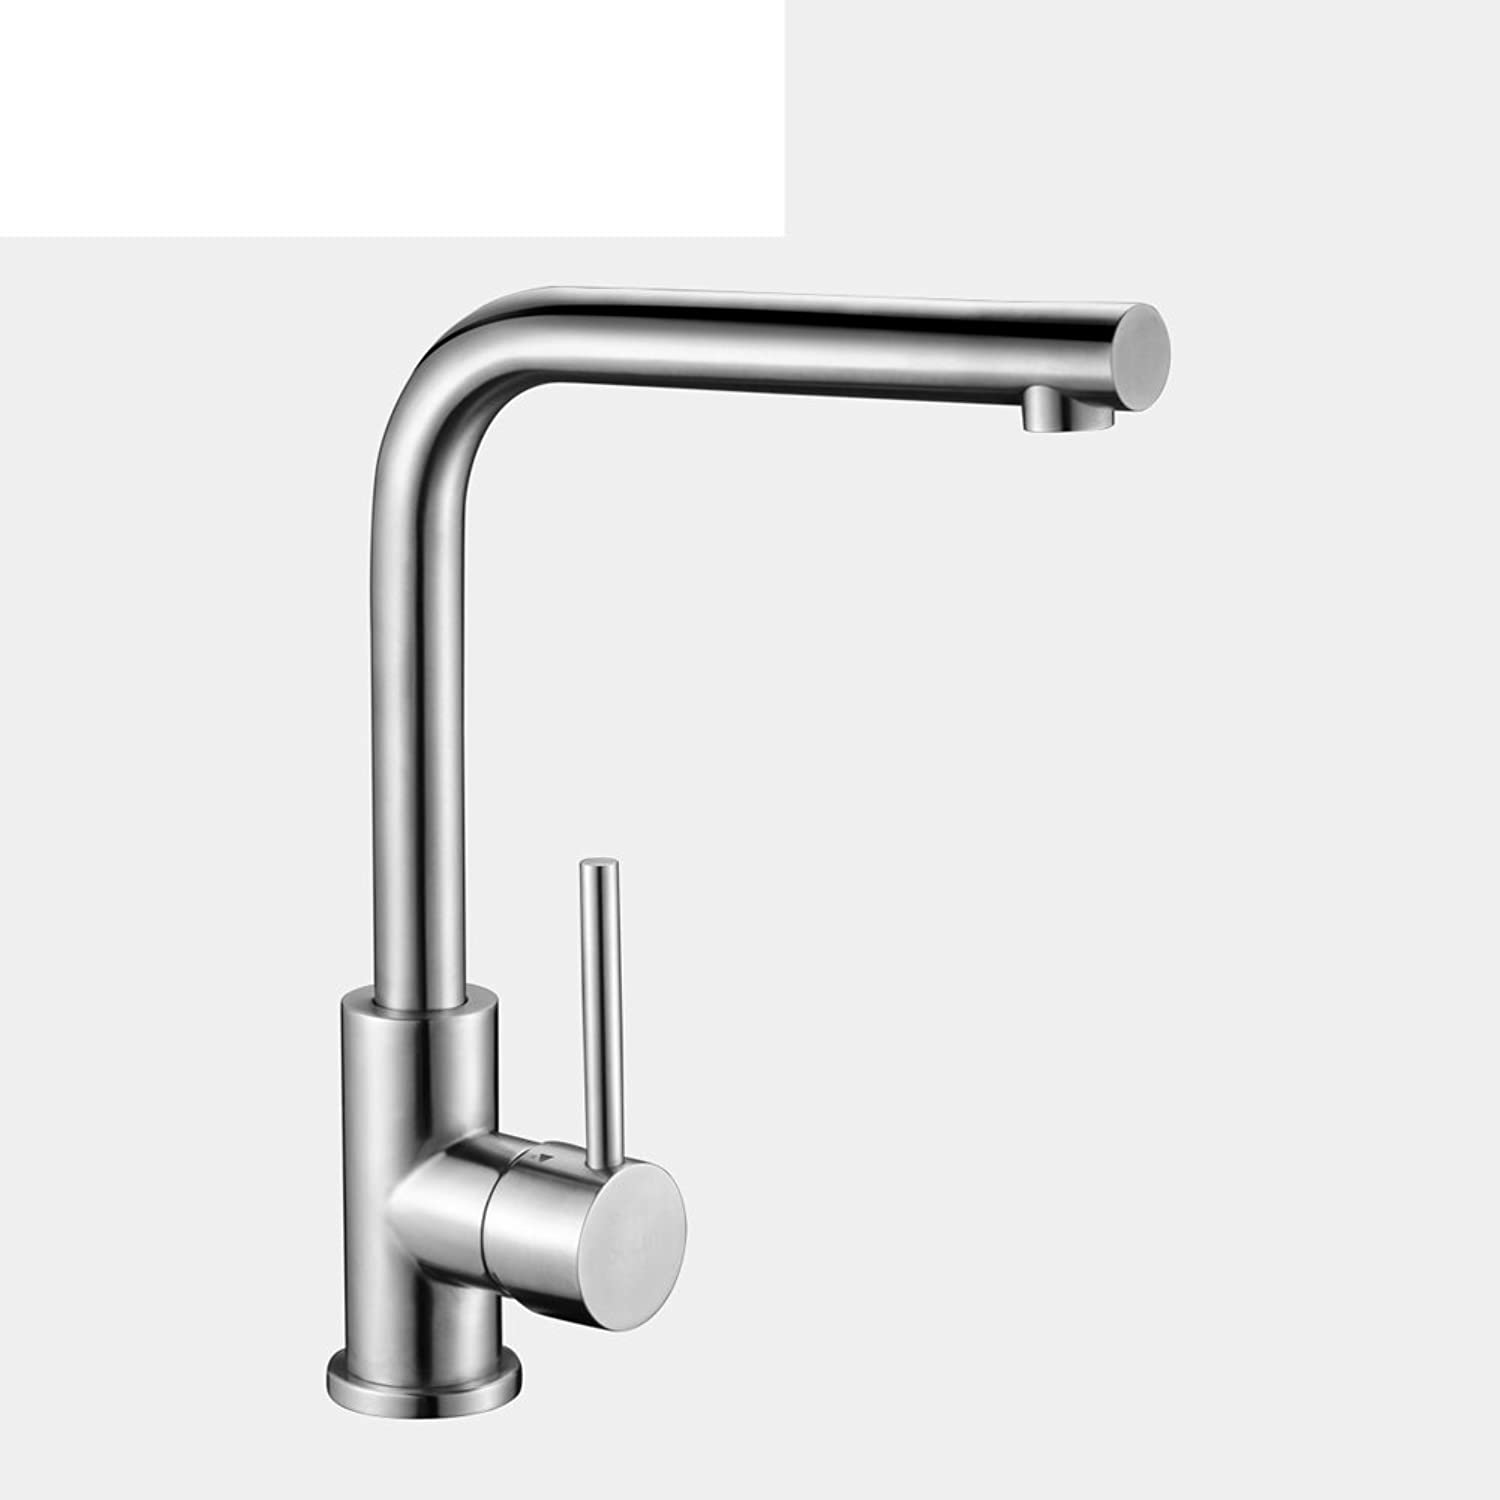 Stainless Steel Kitchen Faucet Kitchen Faucet Stainless Steel Faucet